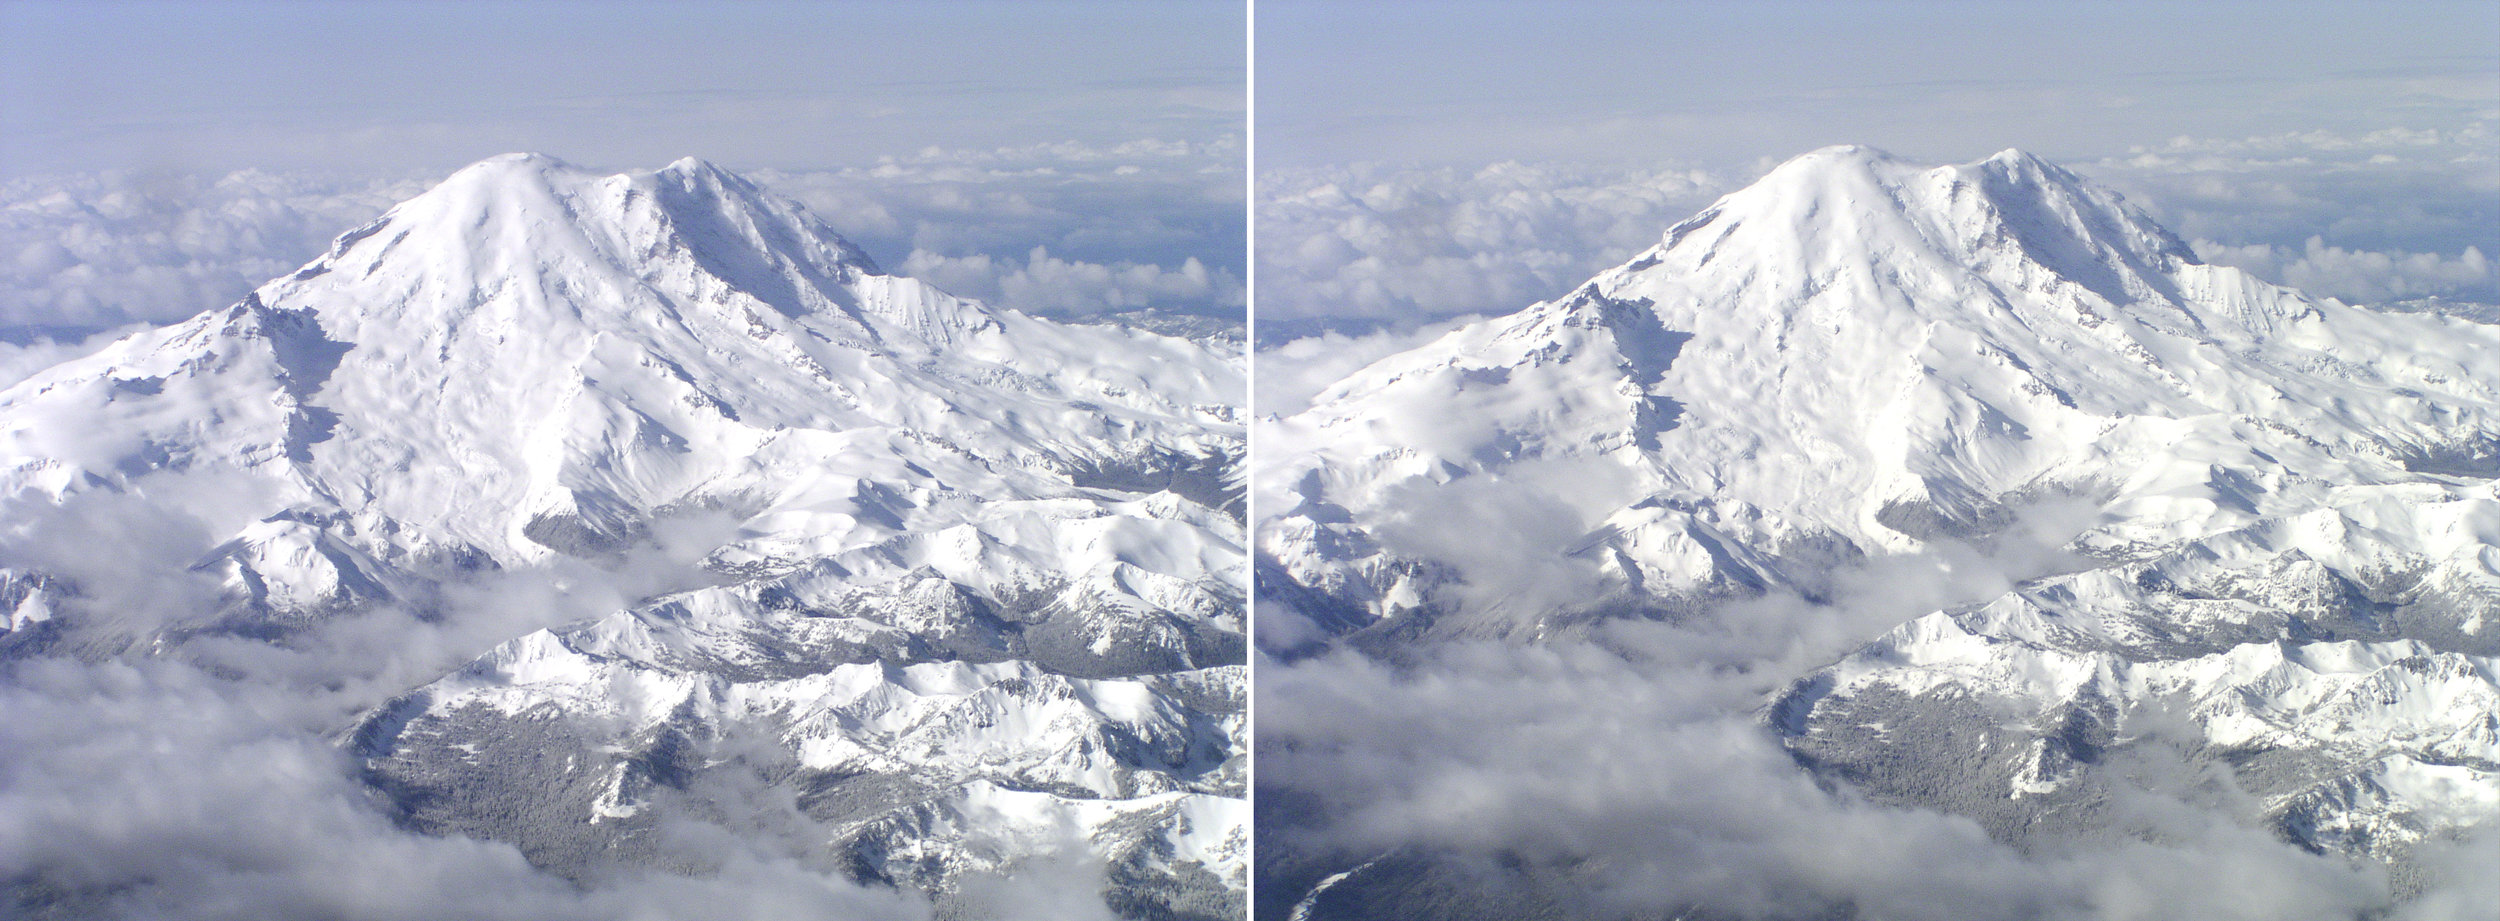 Stereo pics - Mostly landscapes, but a few macro and aerial shots too.